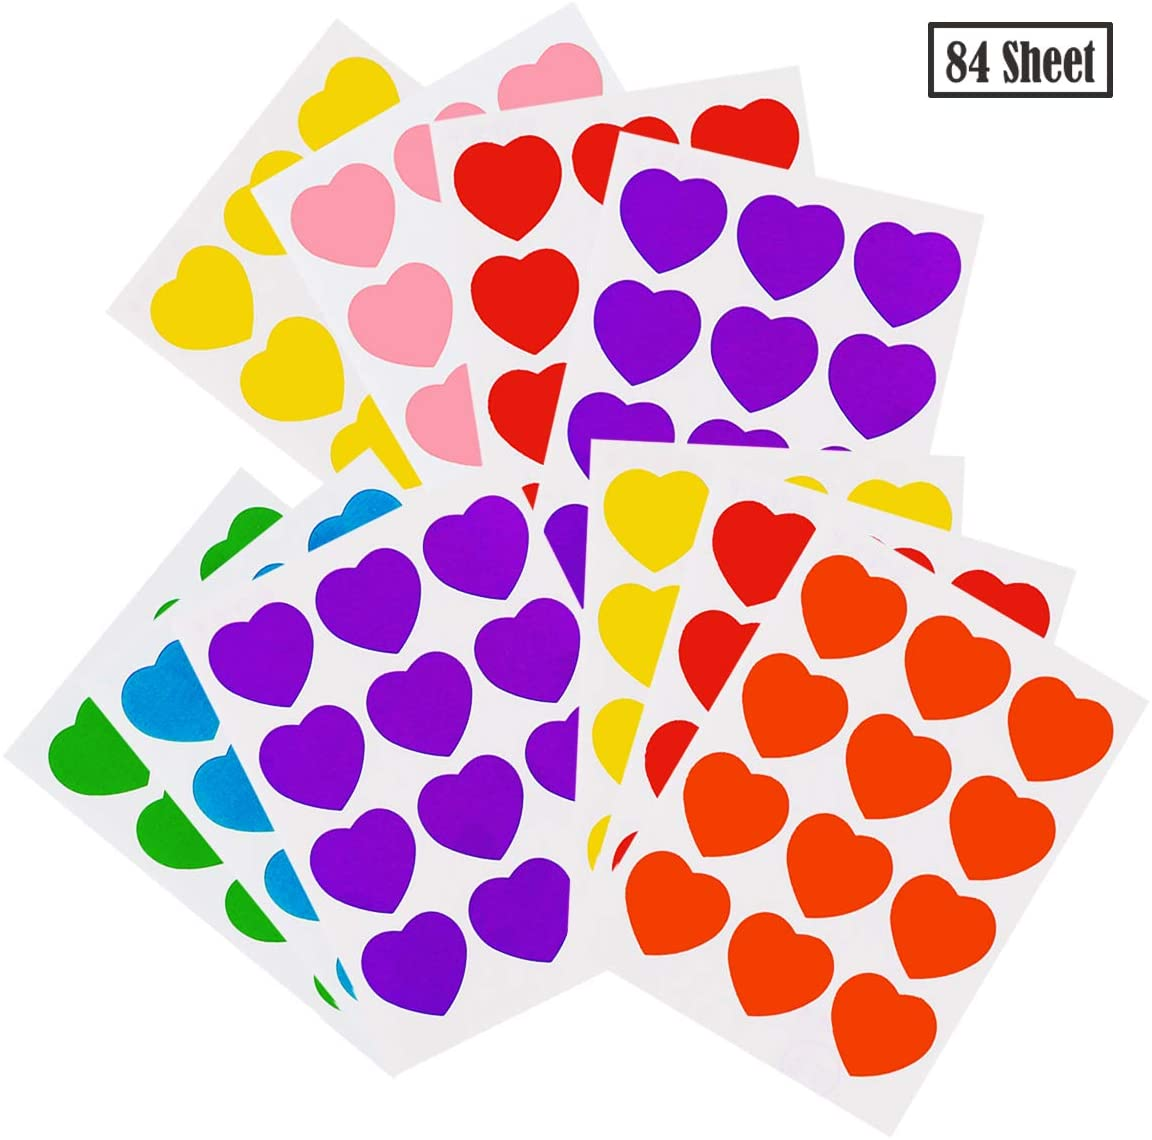 TWDRer 84 Sheet Neon Color-Coding Labels,Dots Round Stickers,Rainbow Dot Stickers,1008 PCS, Arts, Crafts, Fun and Games Stickers